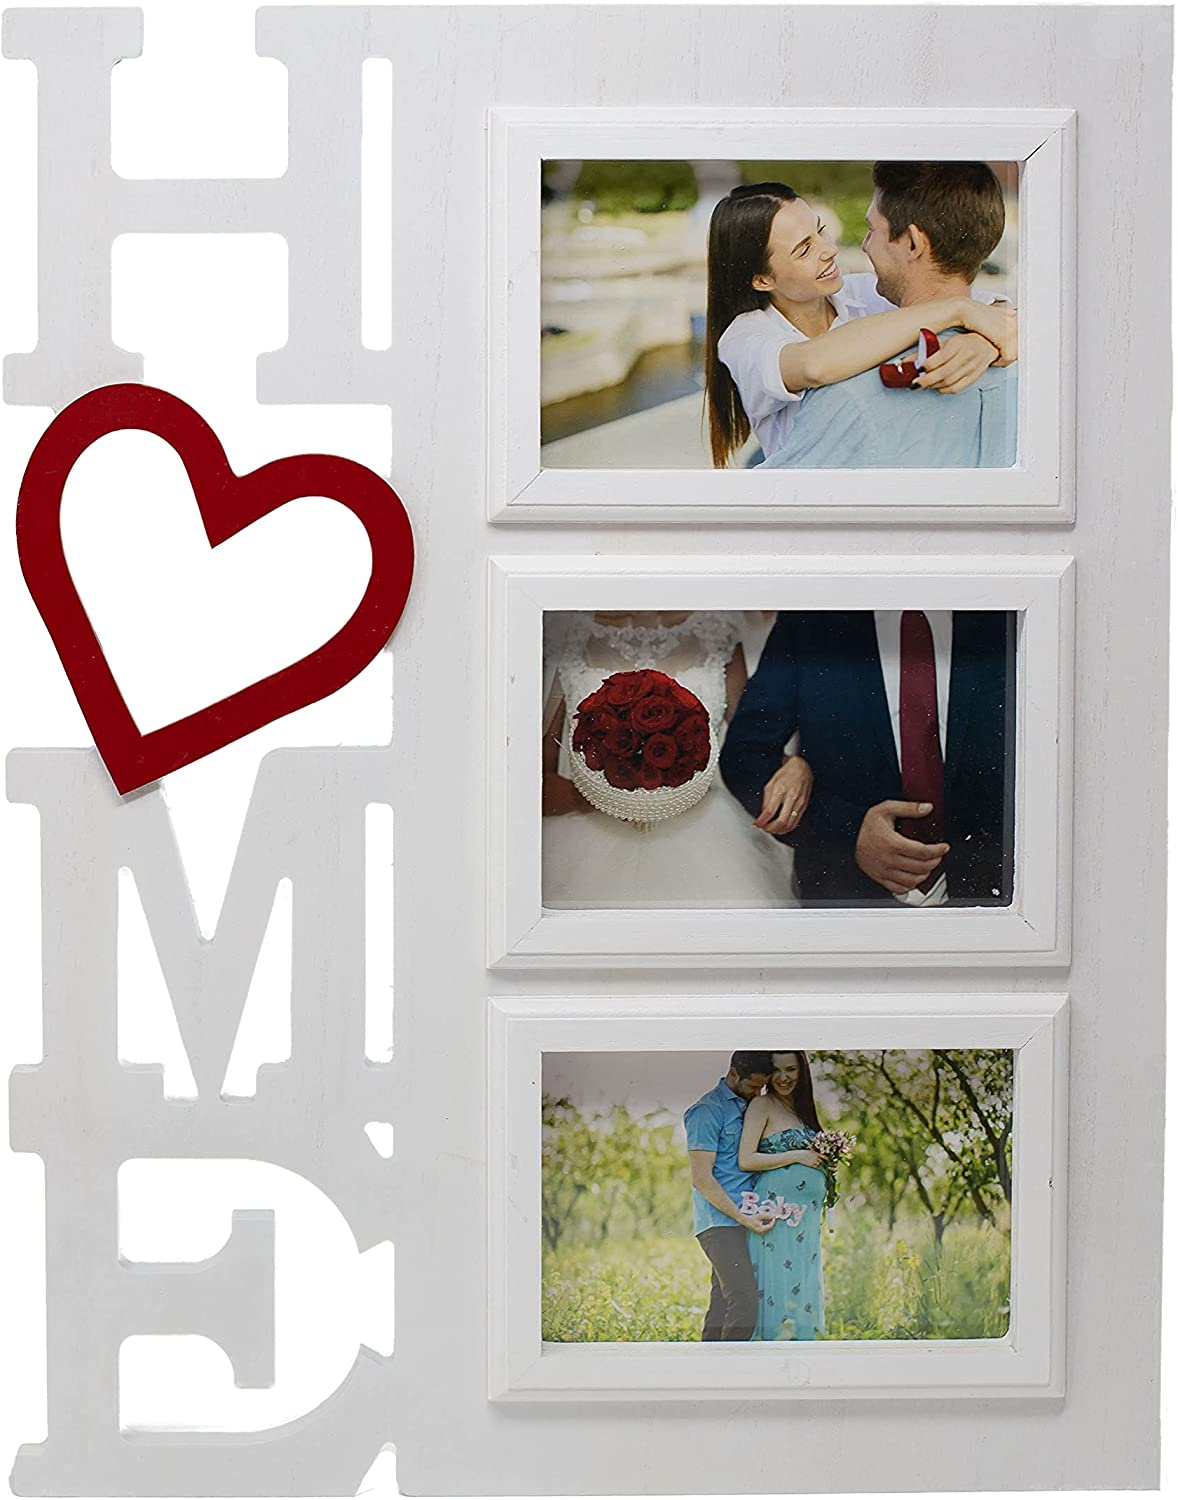 FoxCarr Home Picture Frame w/ three 4x6 openings. Ideal for kitchen, bedroom, living room or hanging in any room. Makes a good gift for someone wanting to create memories with a hanging photo frame